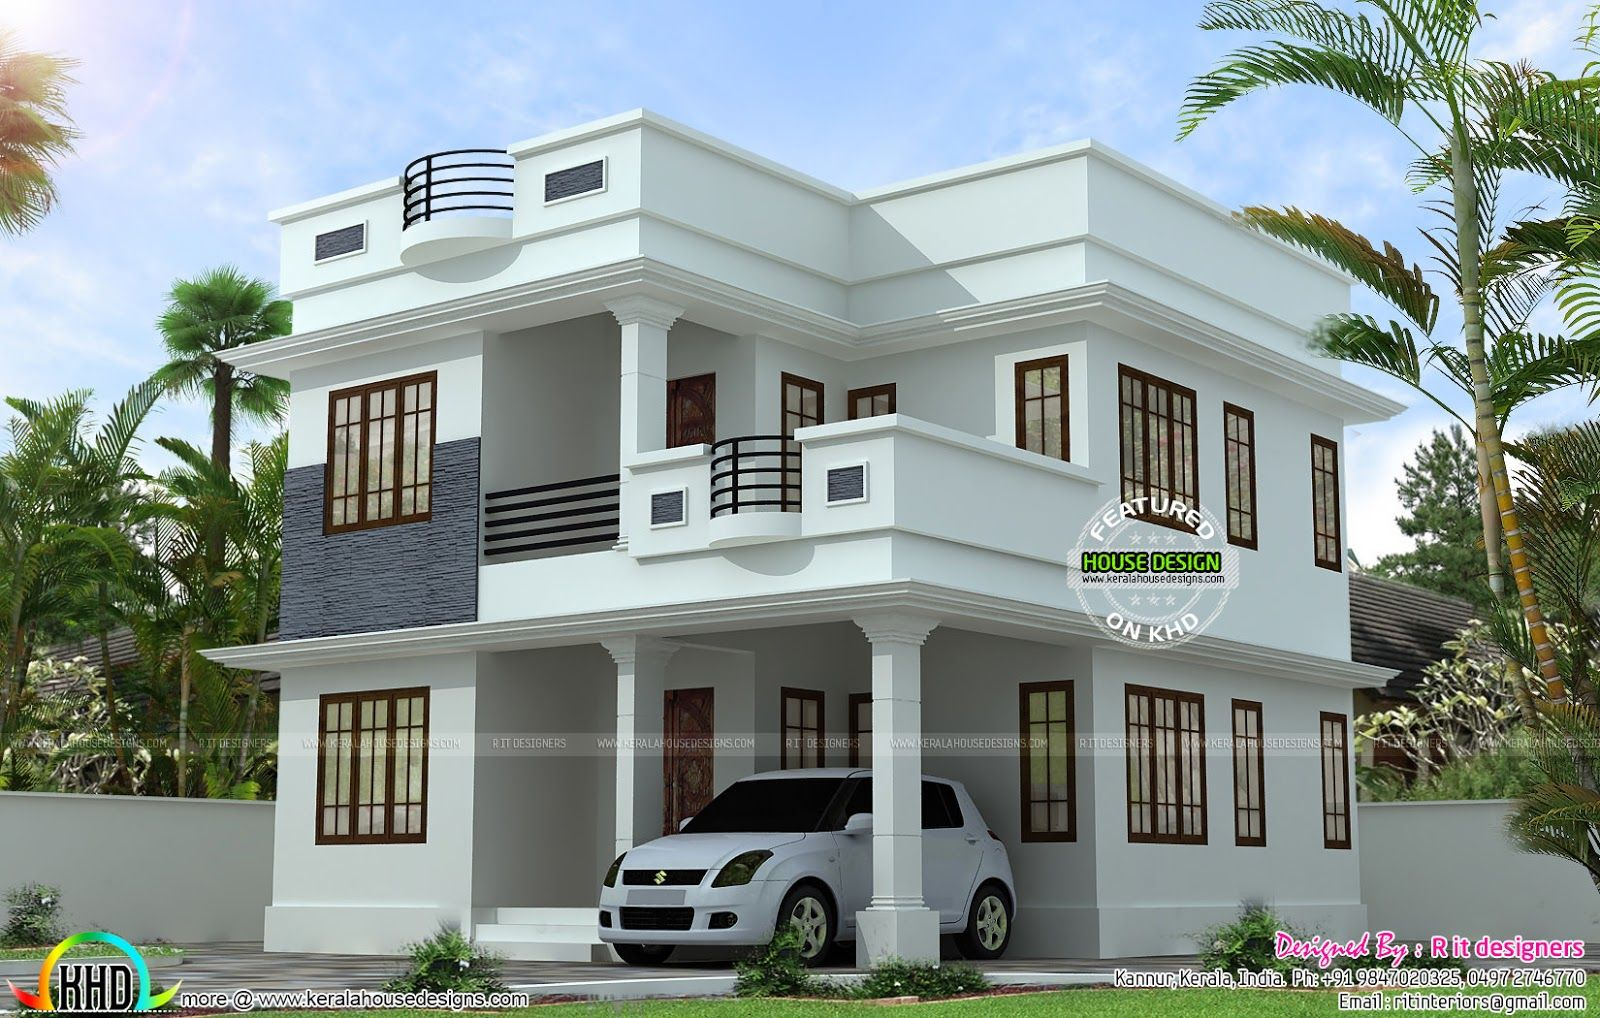 home designs pictures. Neat and simple small house plan  Kerala home design floor plans